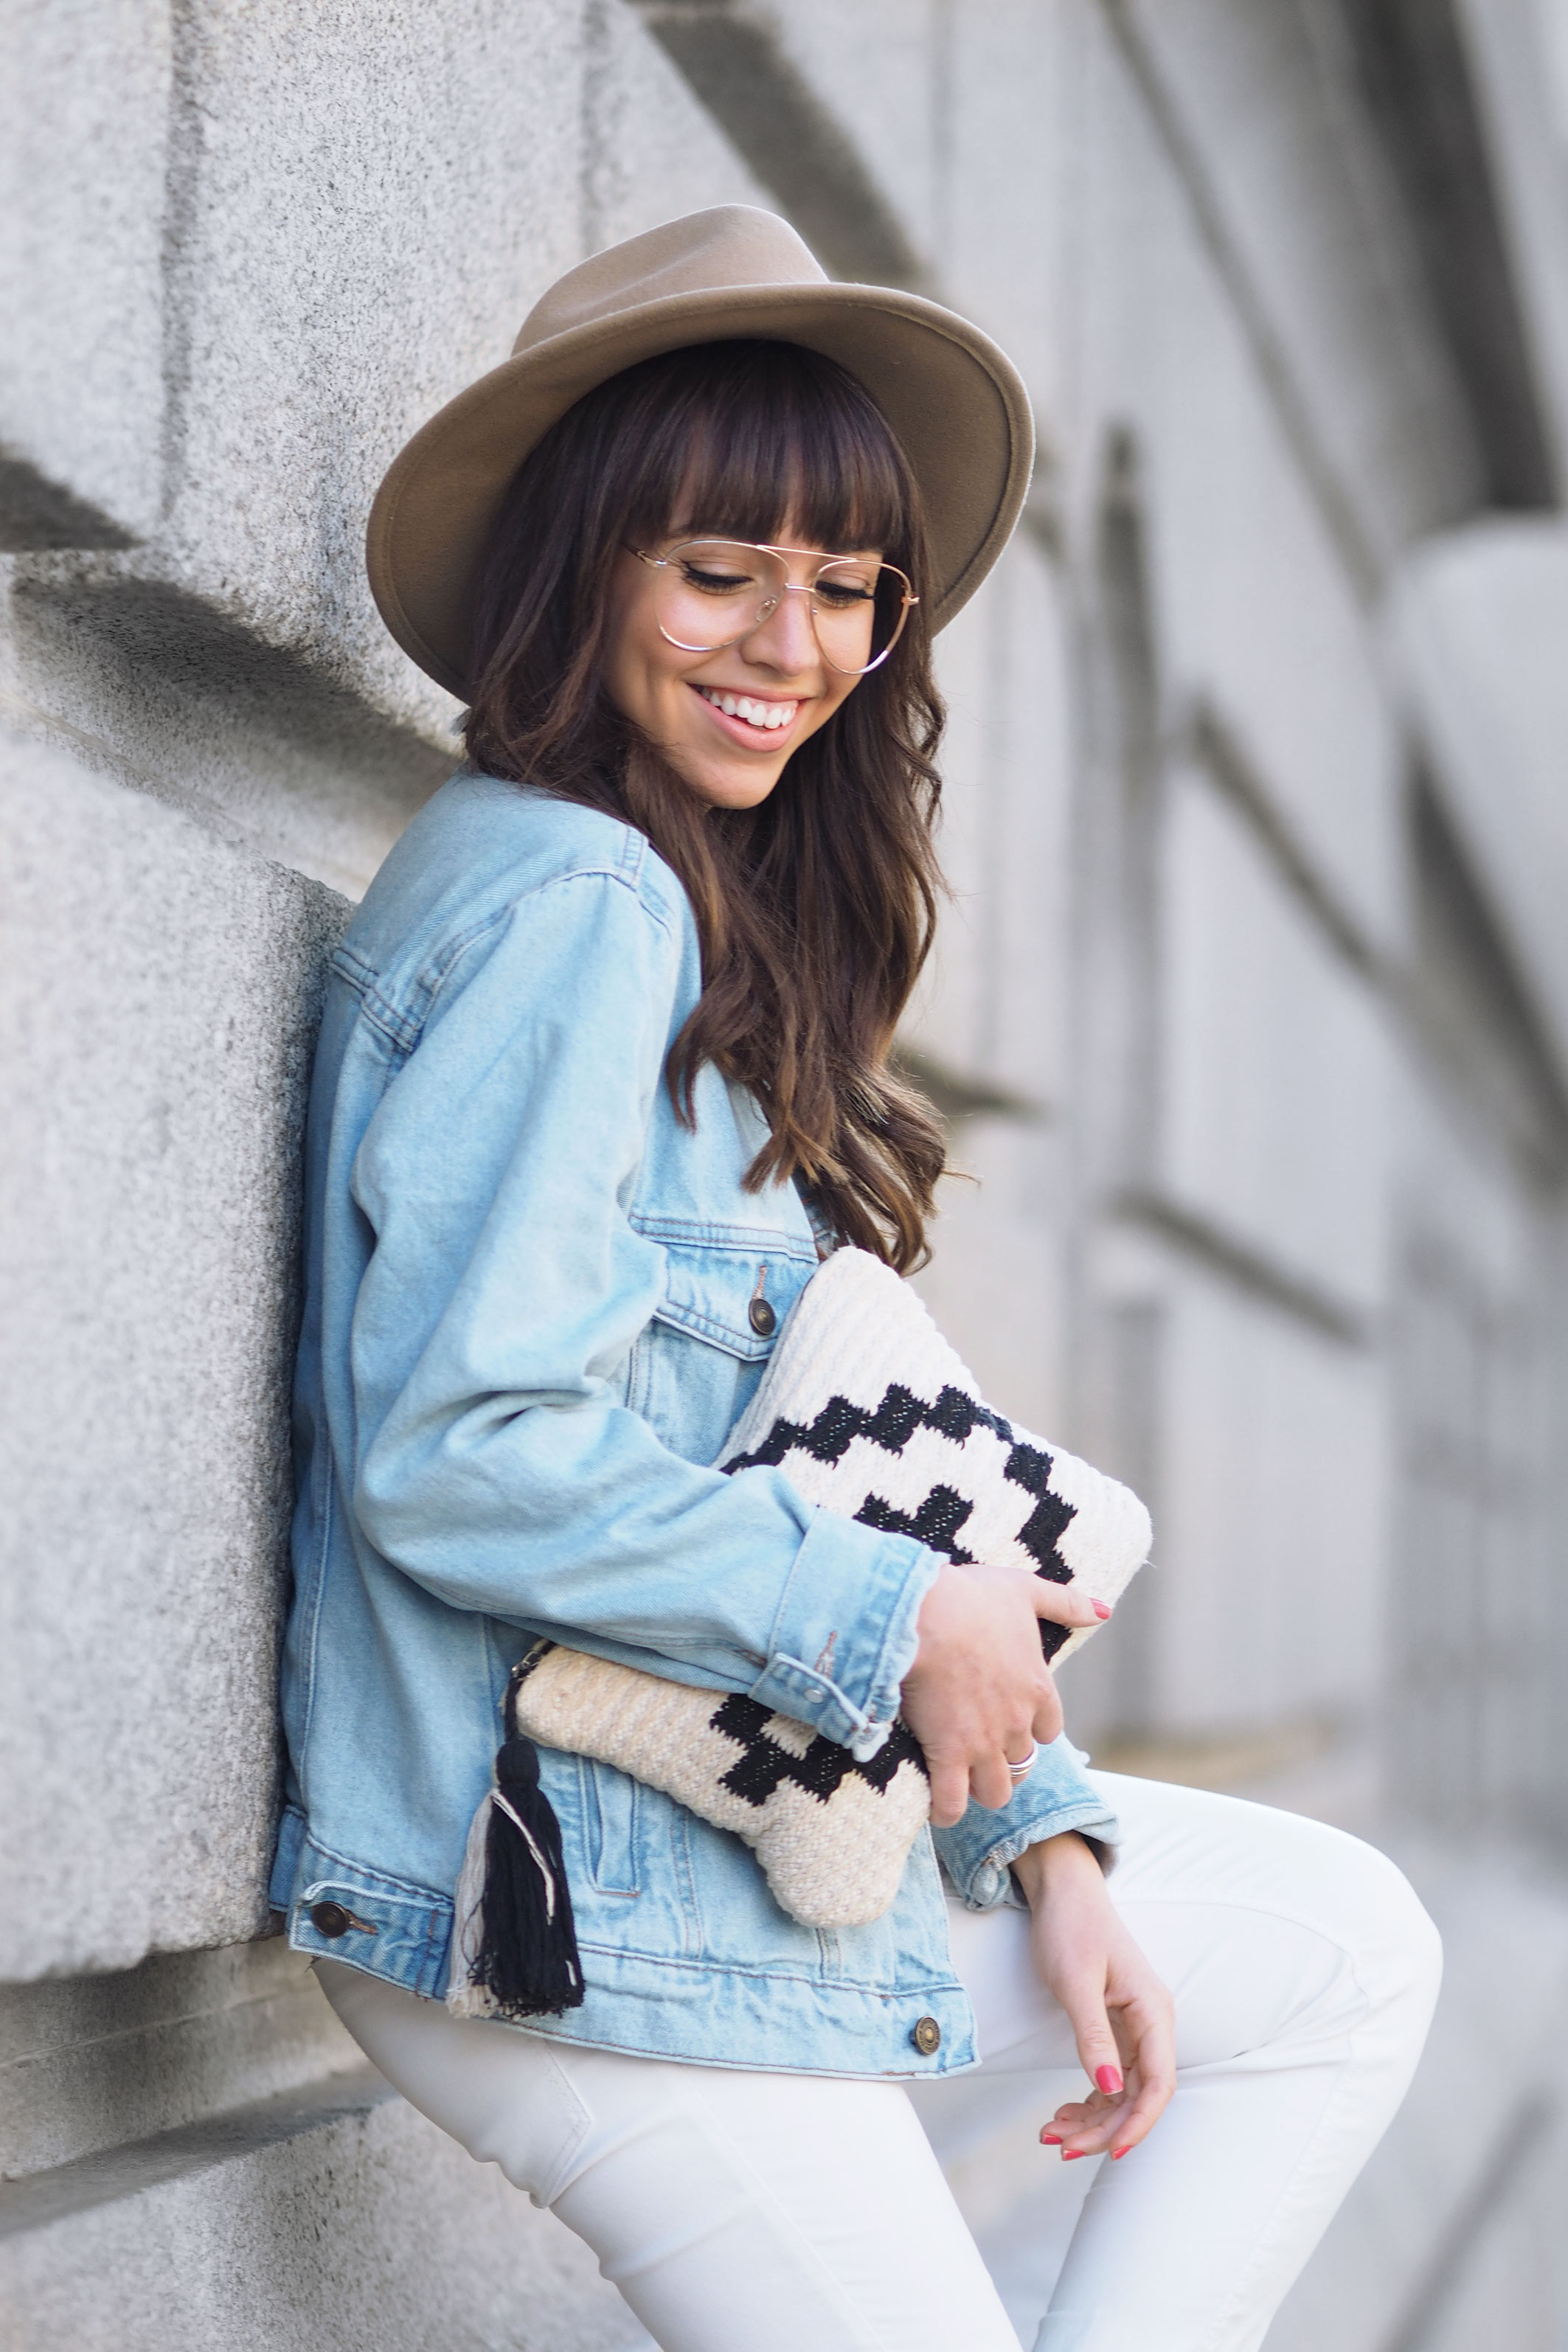 denim oversized jacket, sprint outfit, clear glasses, ethnic hat, street style, wear wild